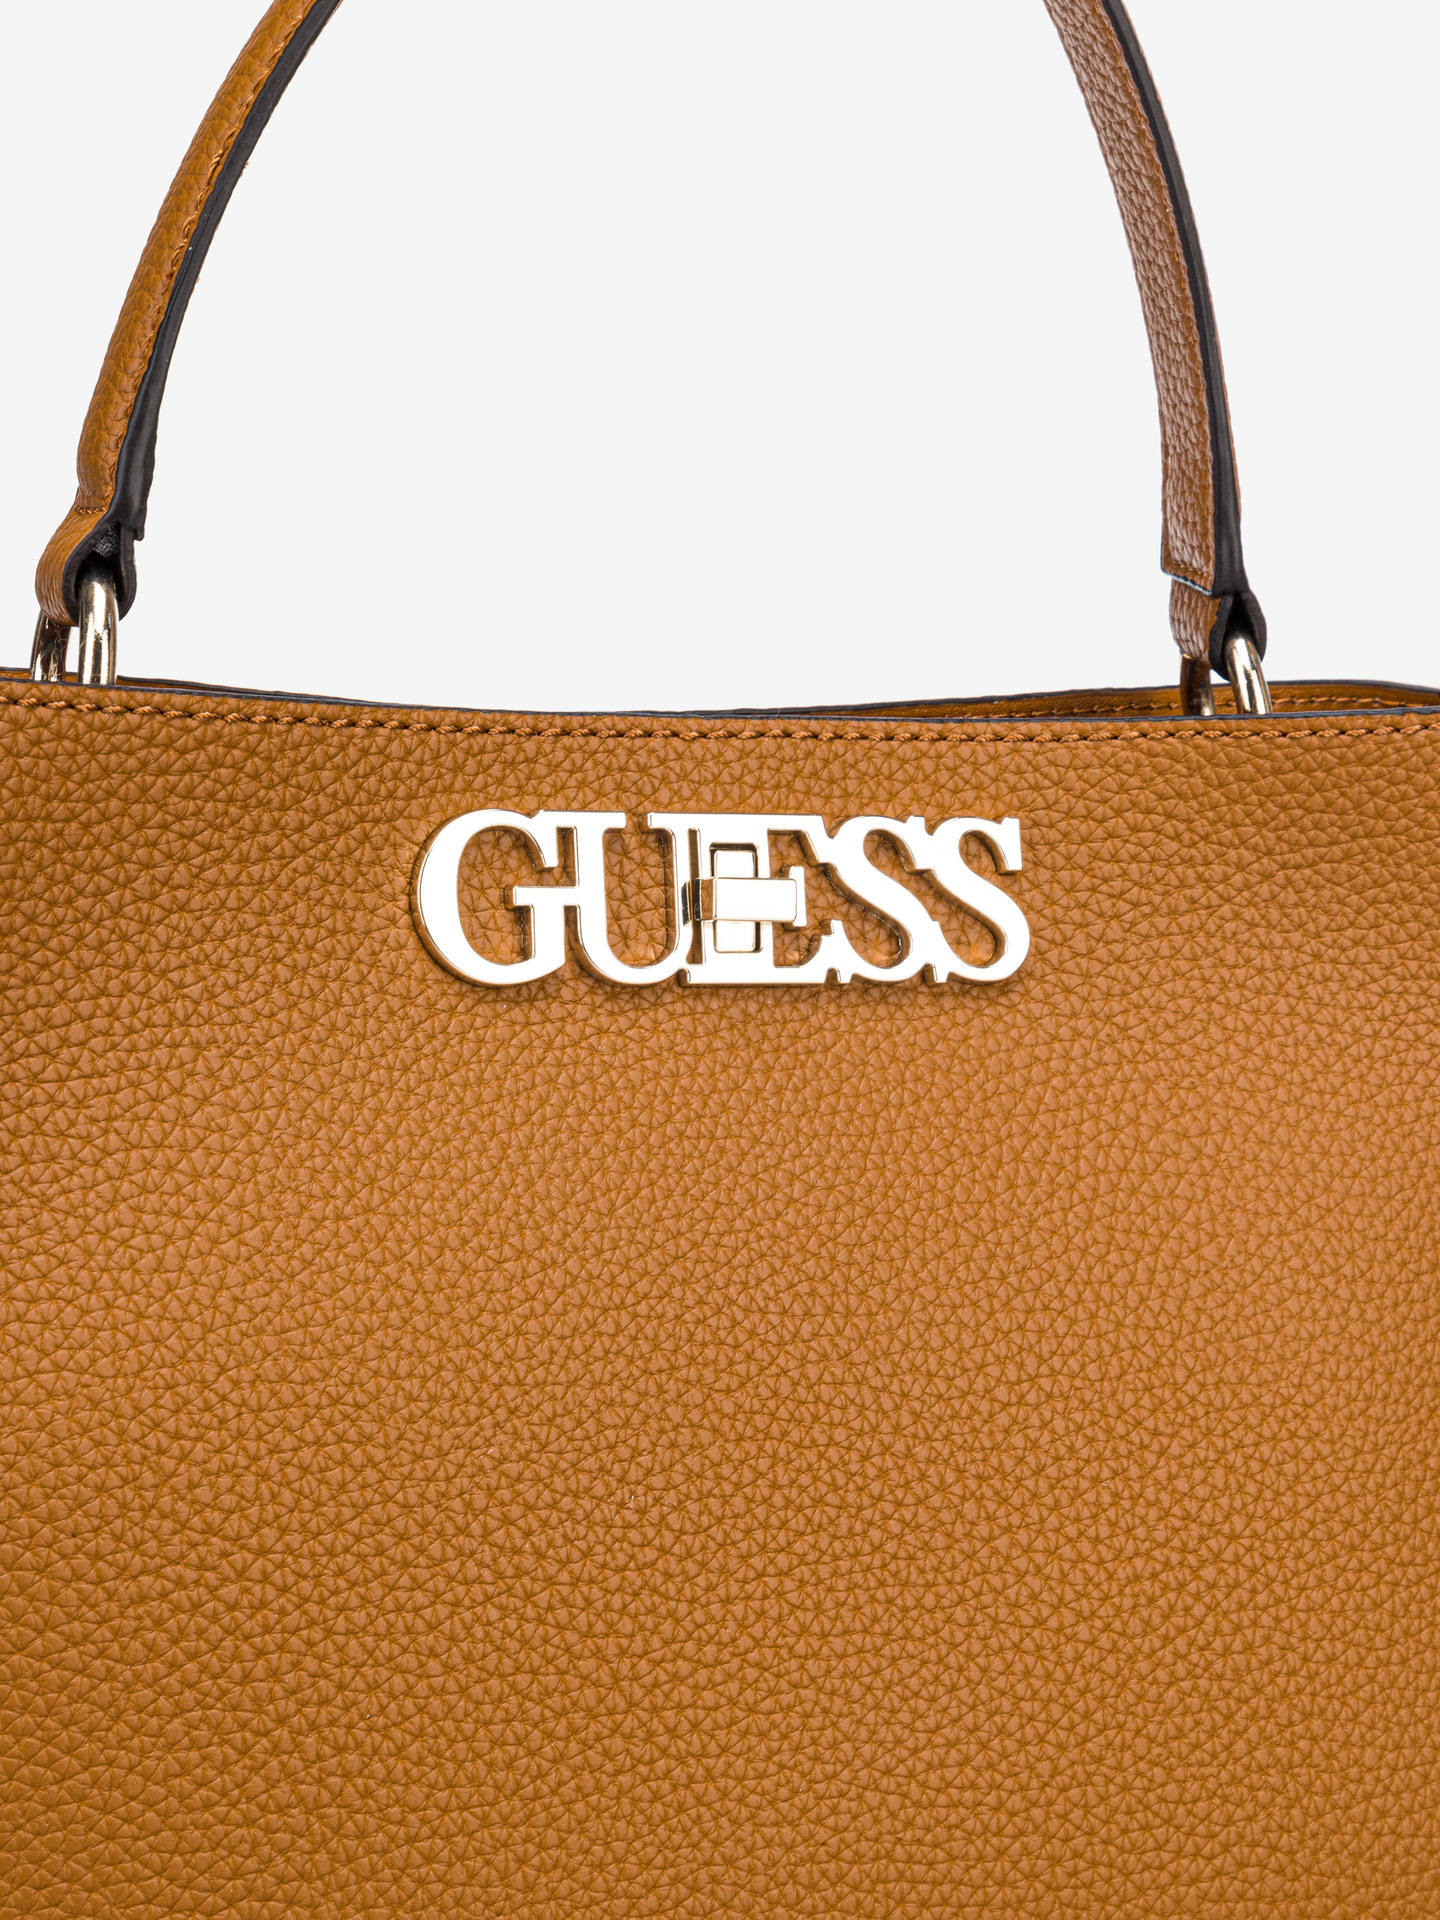 Guess brązowy torebka Uptown Chic Large